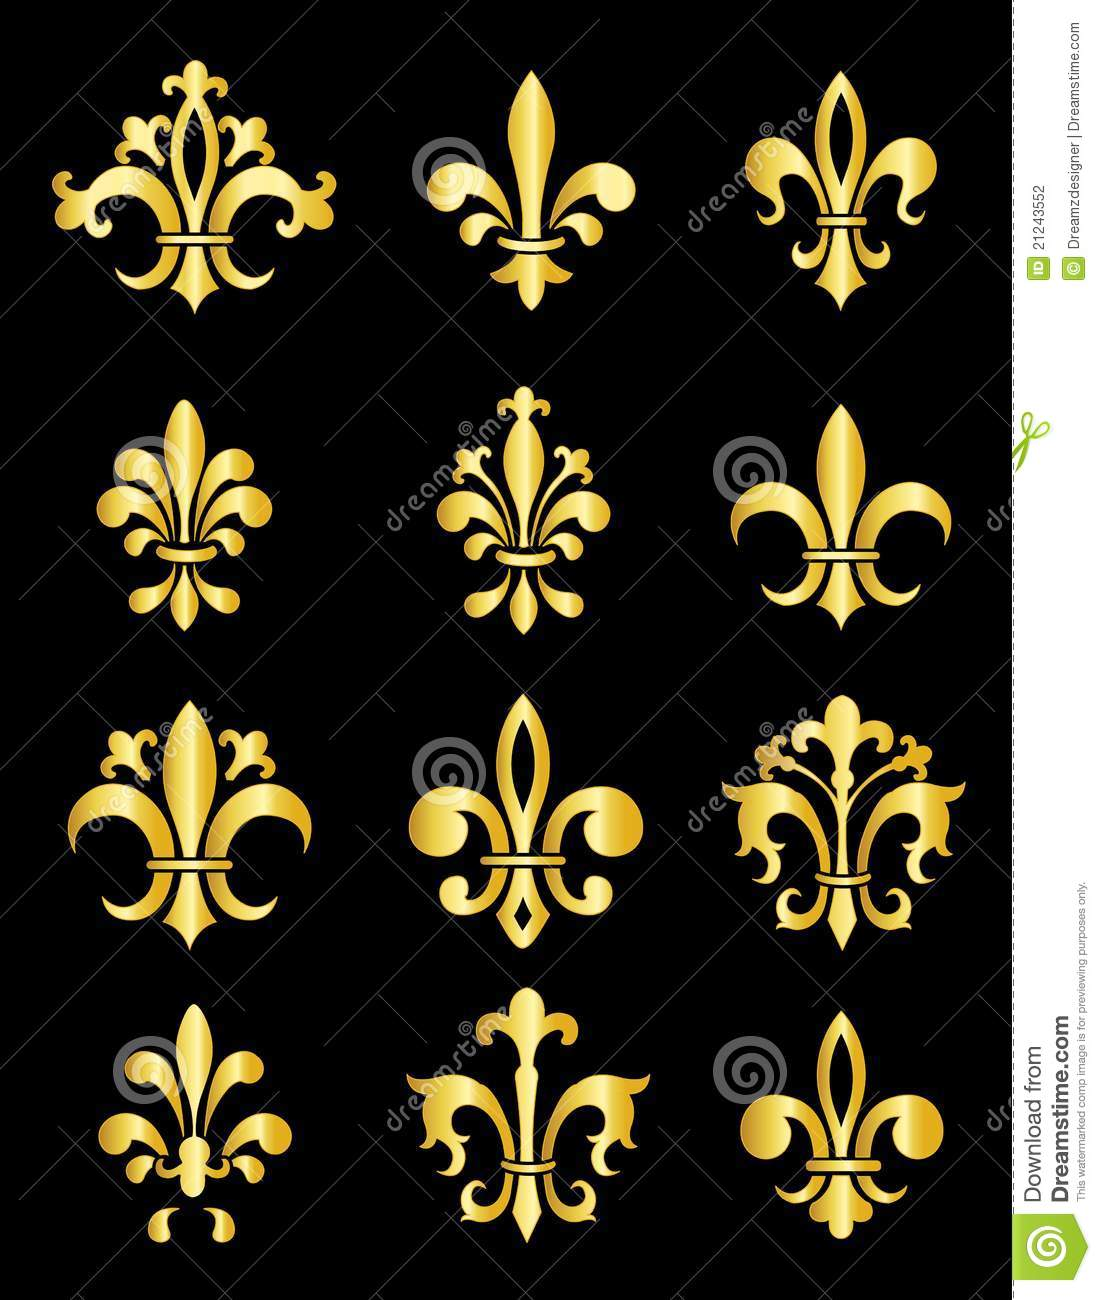 fleur de lis stock vector image of elements emblem. Black Bedroom Furniture Sets. Home Design Ideas